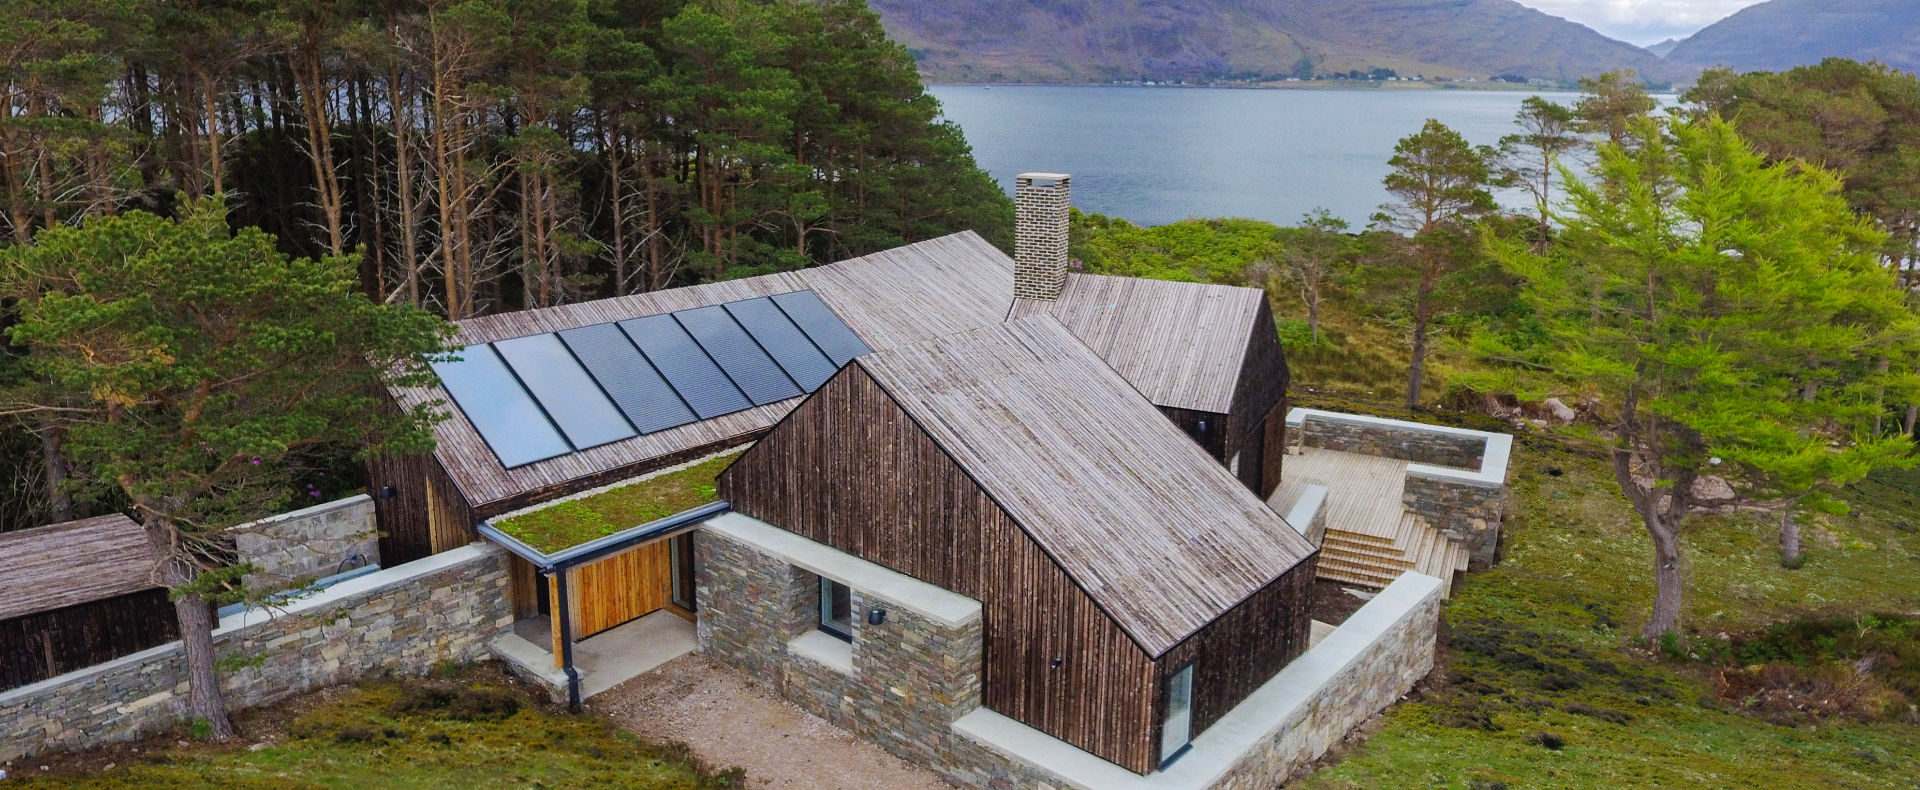 Offf-grid retreat overlooking a loch